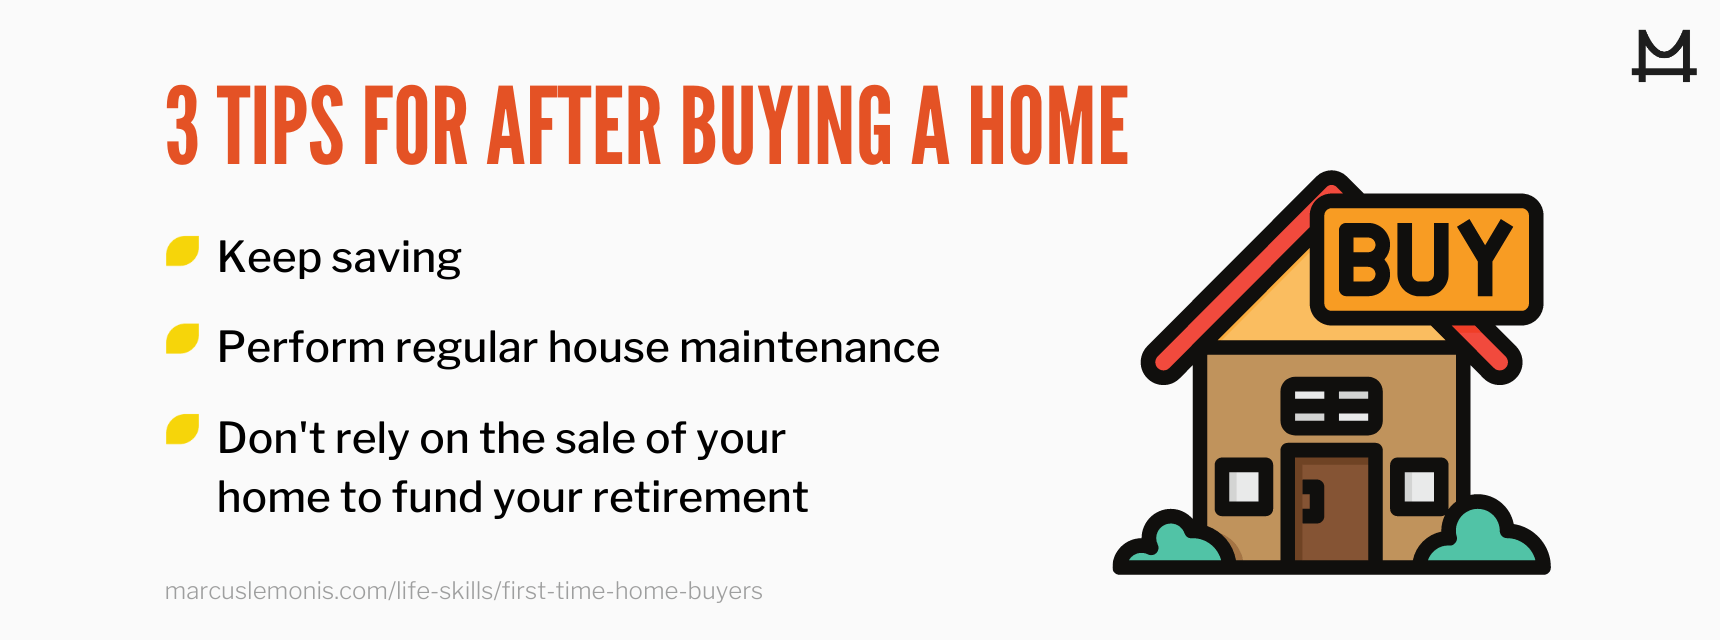 List of three tips for after buying a home